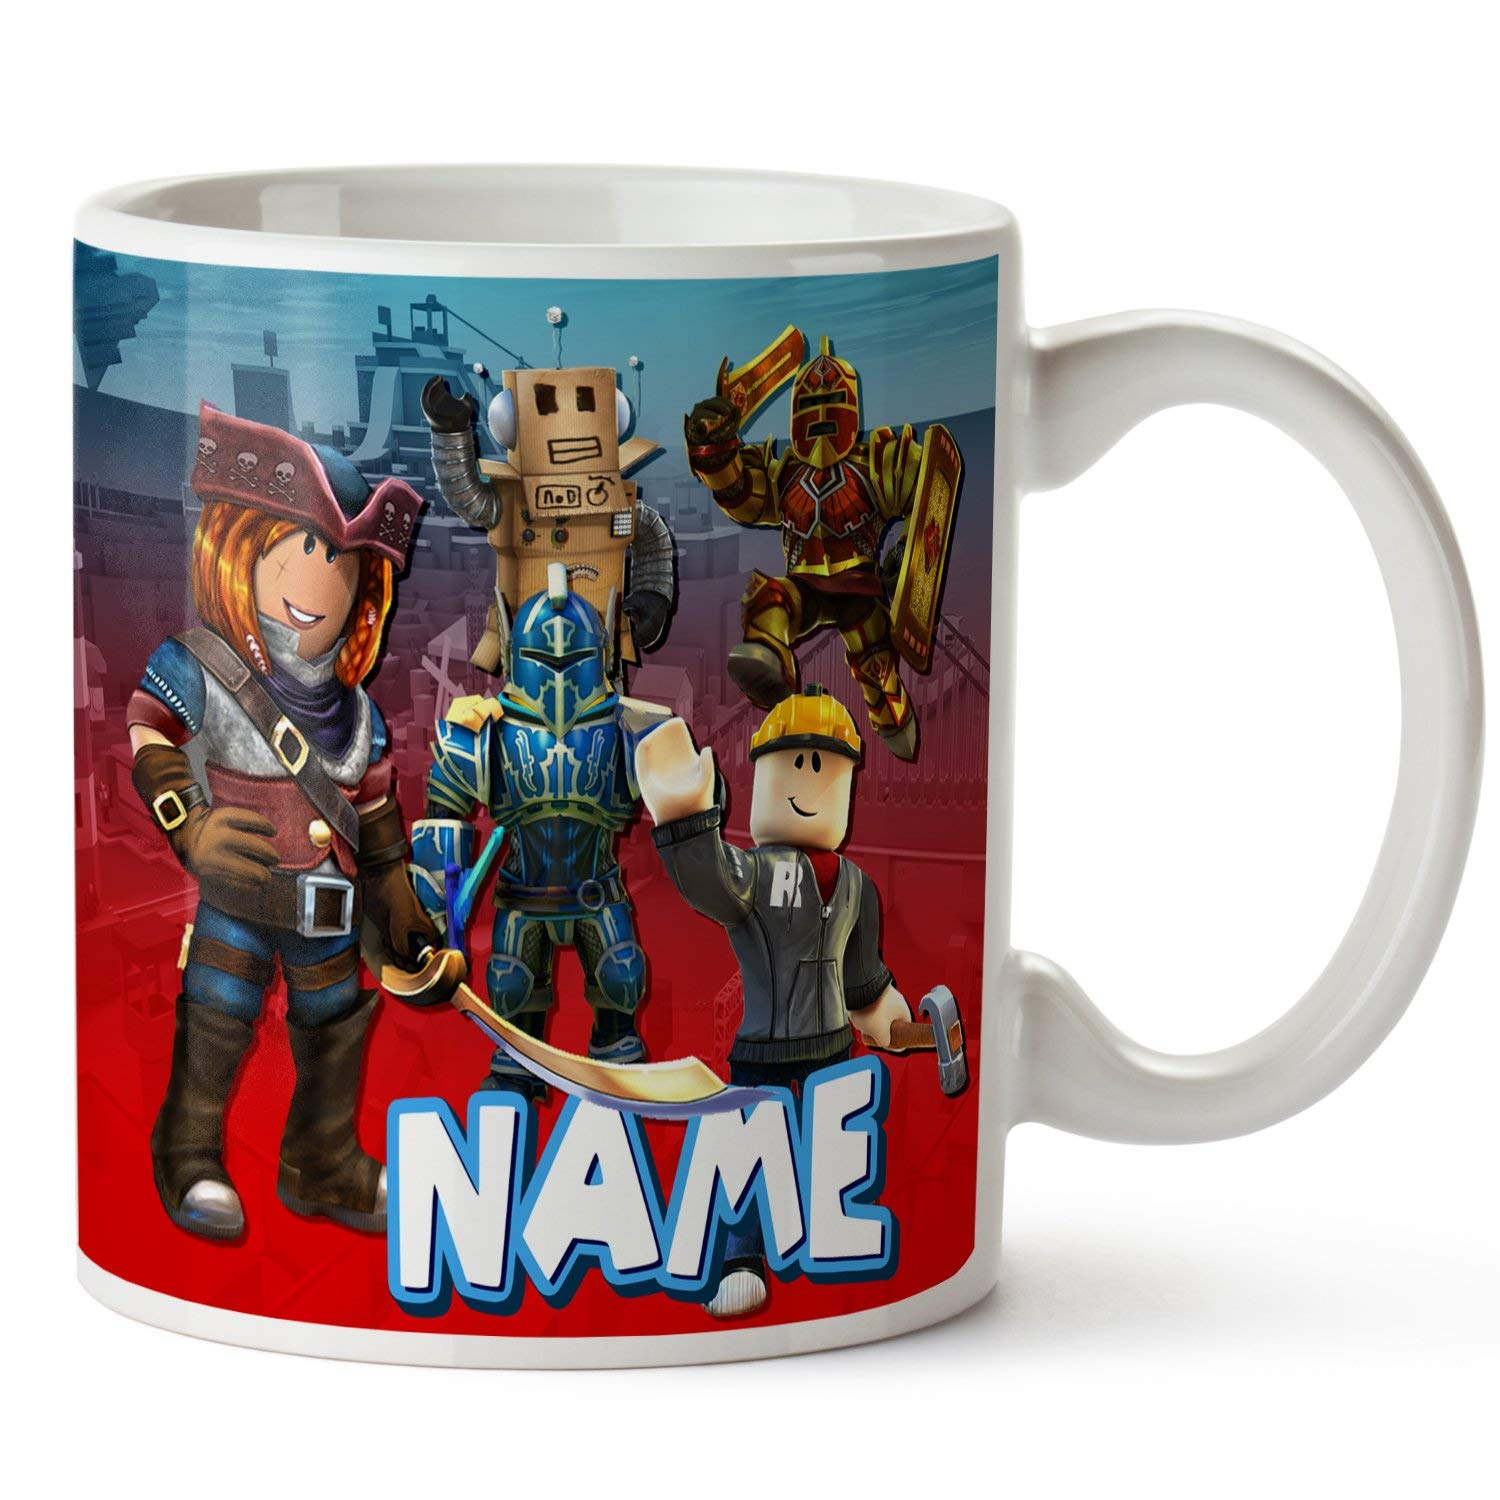 Personalised Name Mug Roblox Gamer 11oz Ceramic White Cup Gift RB02